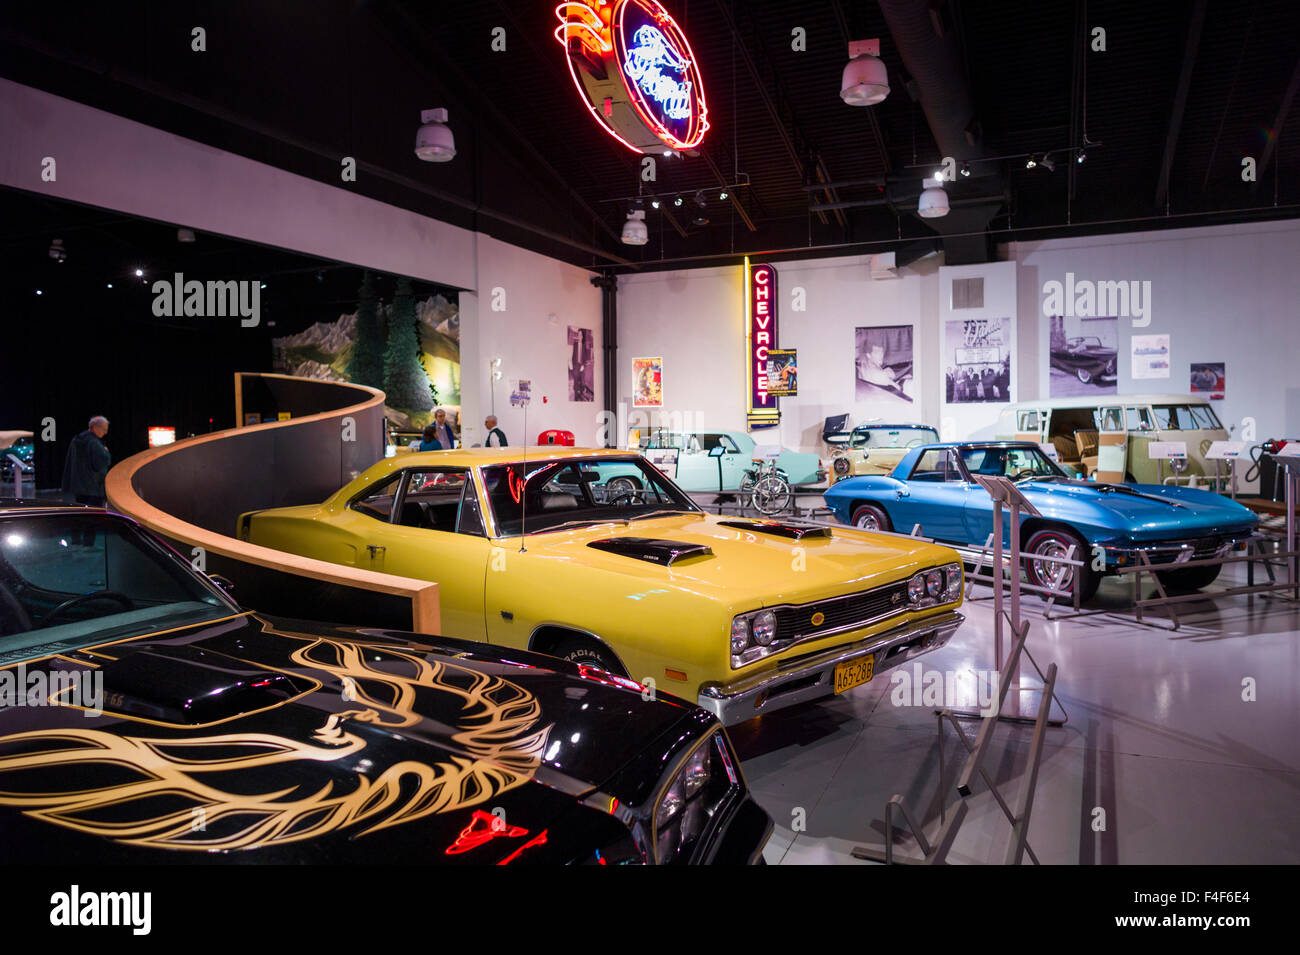 1960s Cars Stock Photos & 1960s Cars Stock Images - Alamy